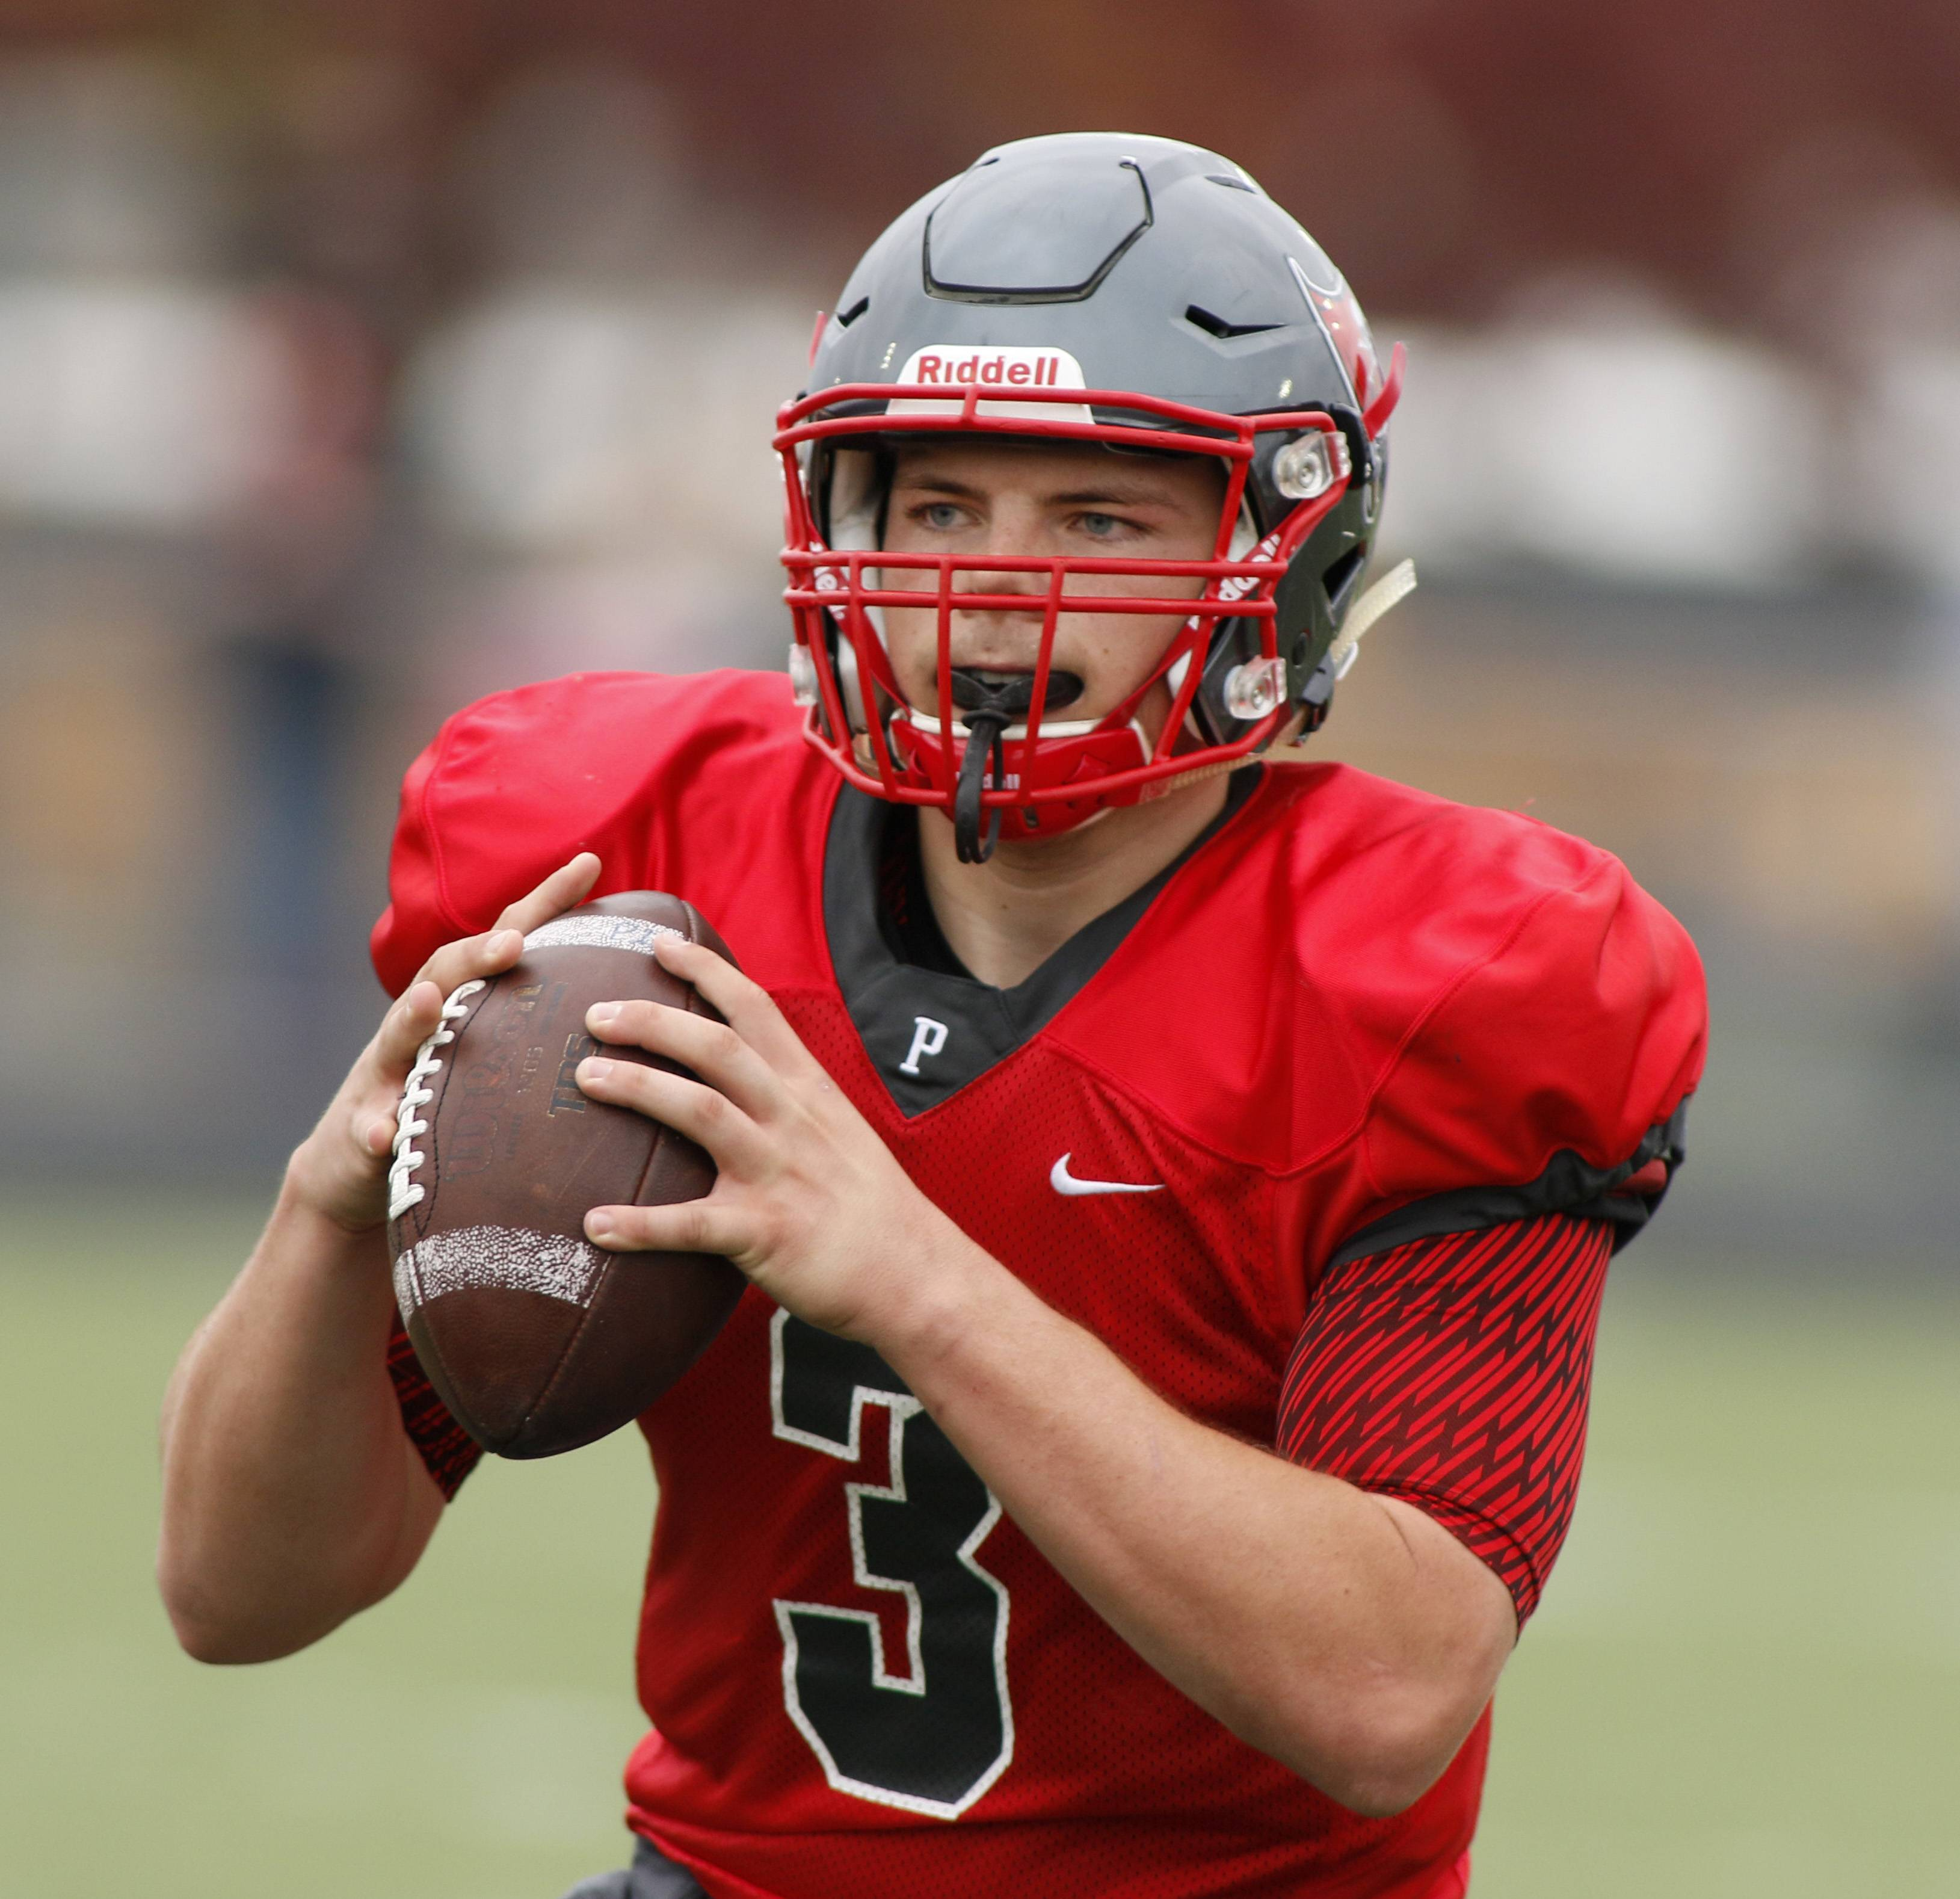 Palatine senior quarterback Zach Oles looks downfield against Notre Dame during the first round of Class 8A football playoffs in Palatine. On Monday, Oles announced he'd play his college football at Butler University.